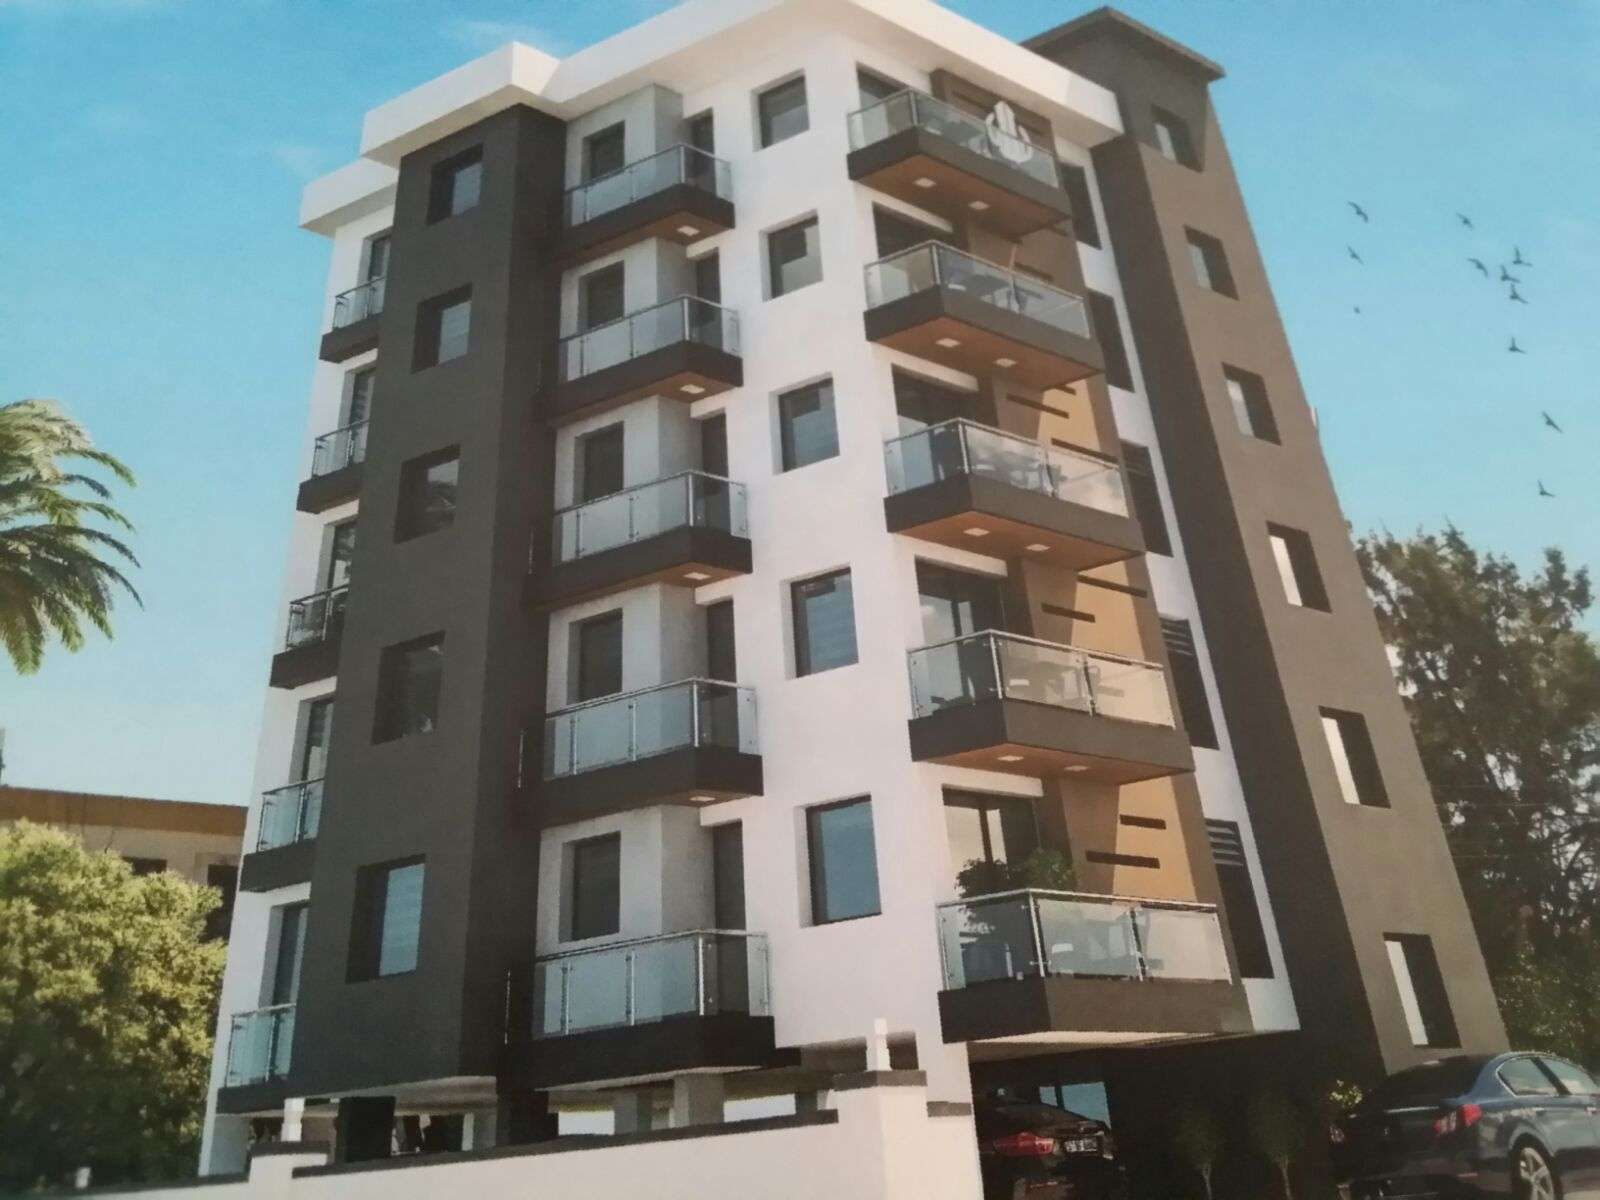 THREE-BEDROOM-APARTMENT-FOR-SALE-IN-CENTRAL-KYRENIA-KY655